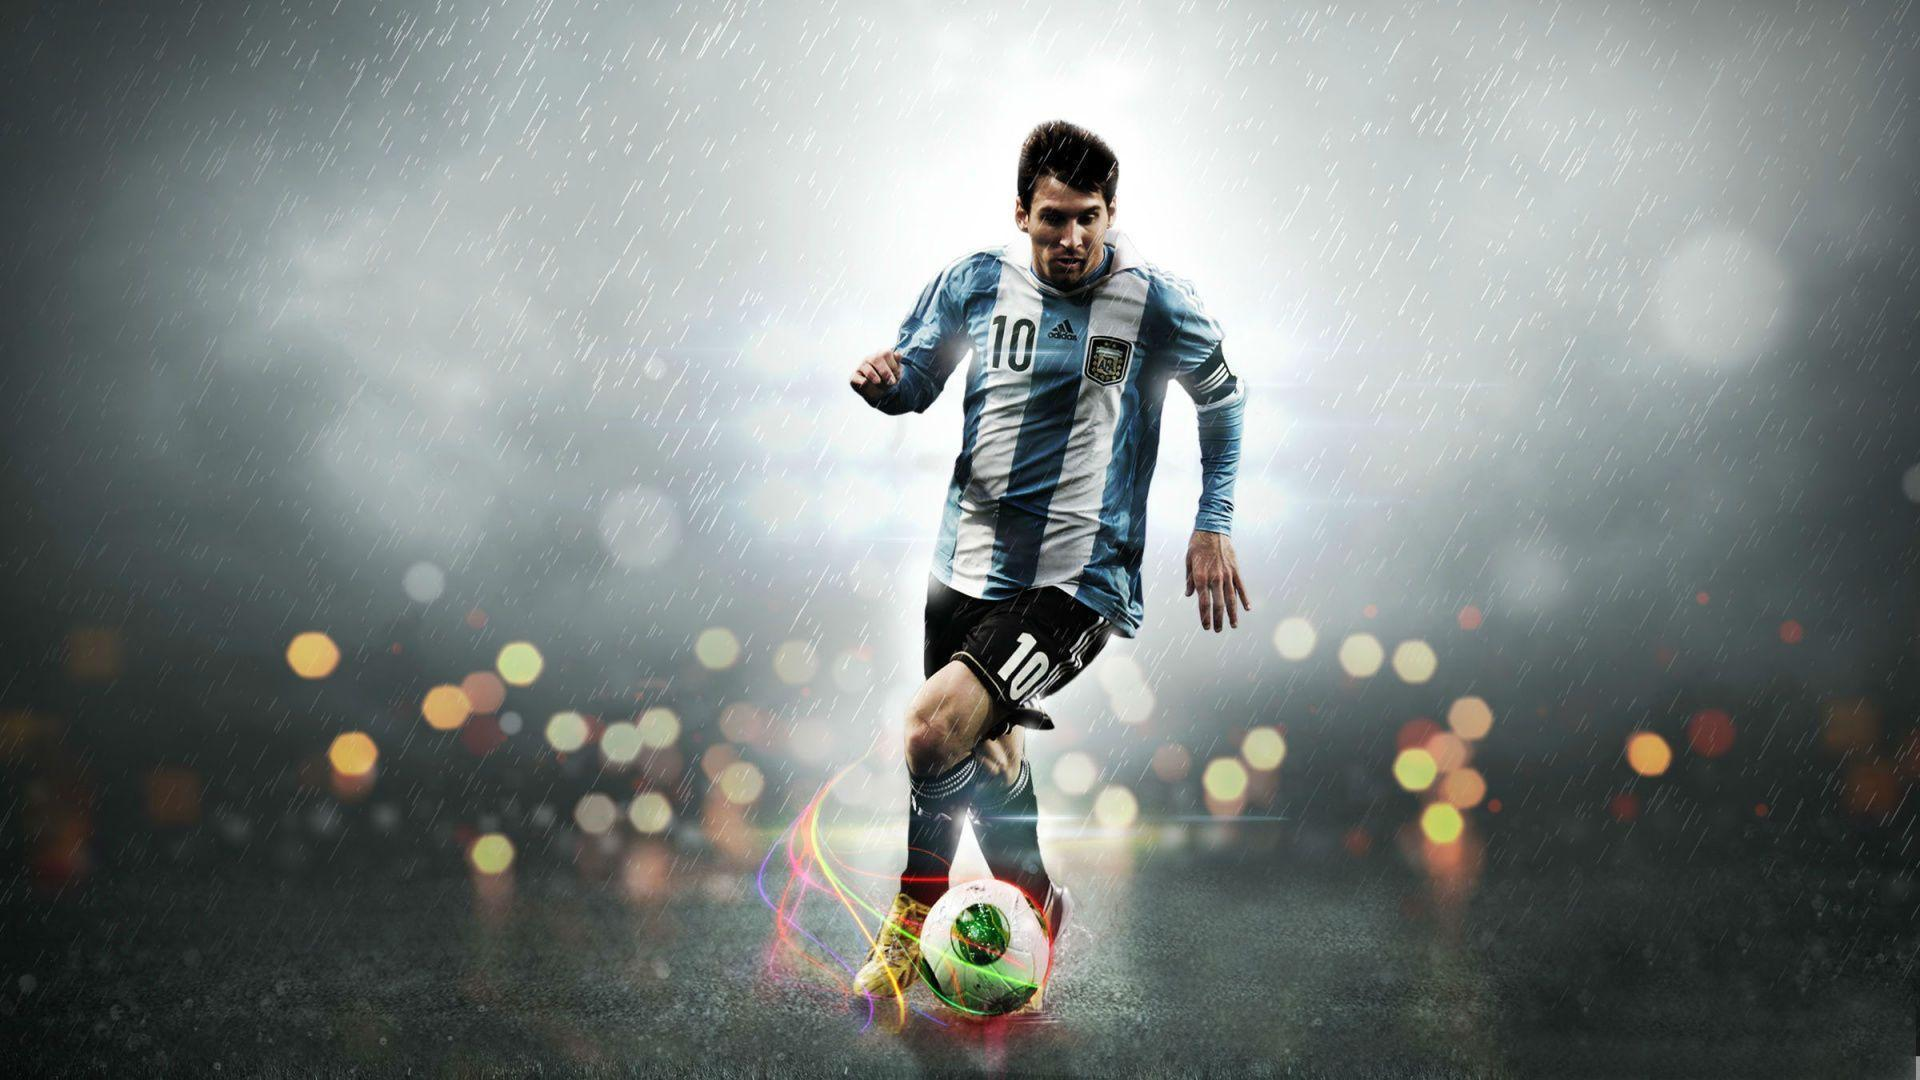 Best Soccer Wallpaper